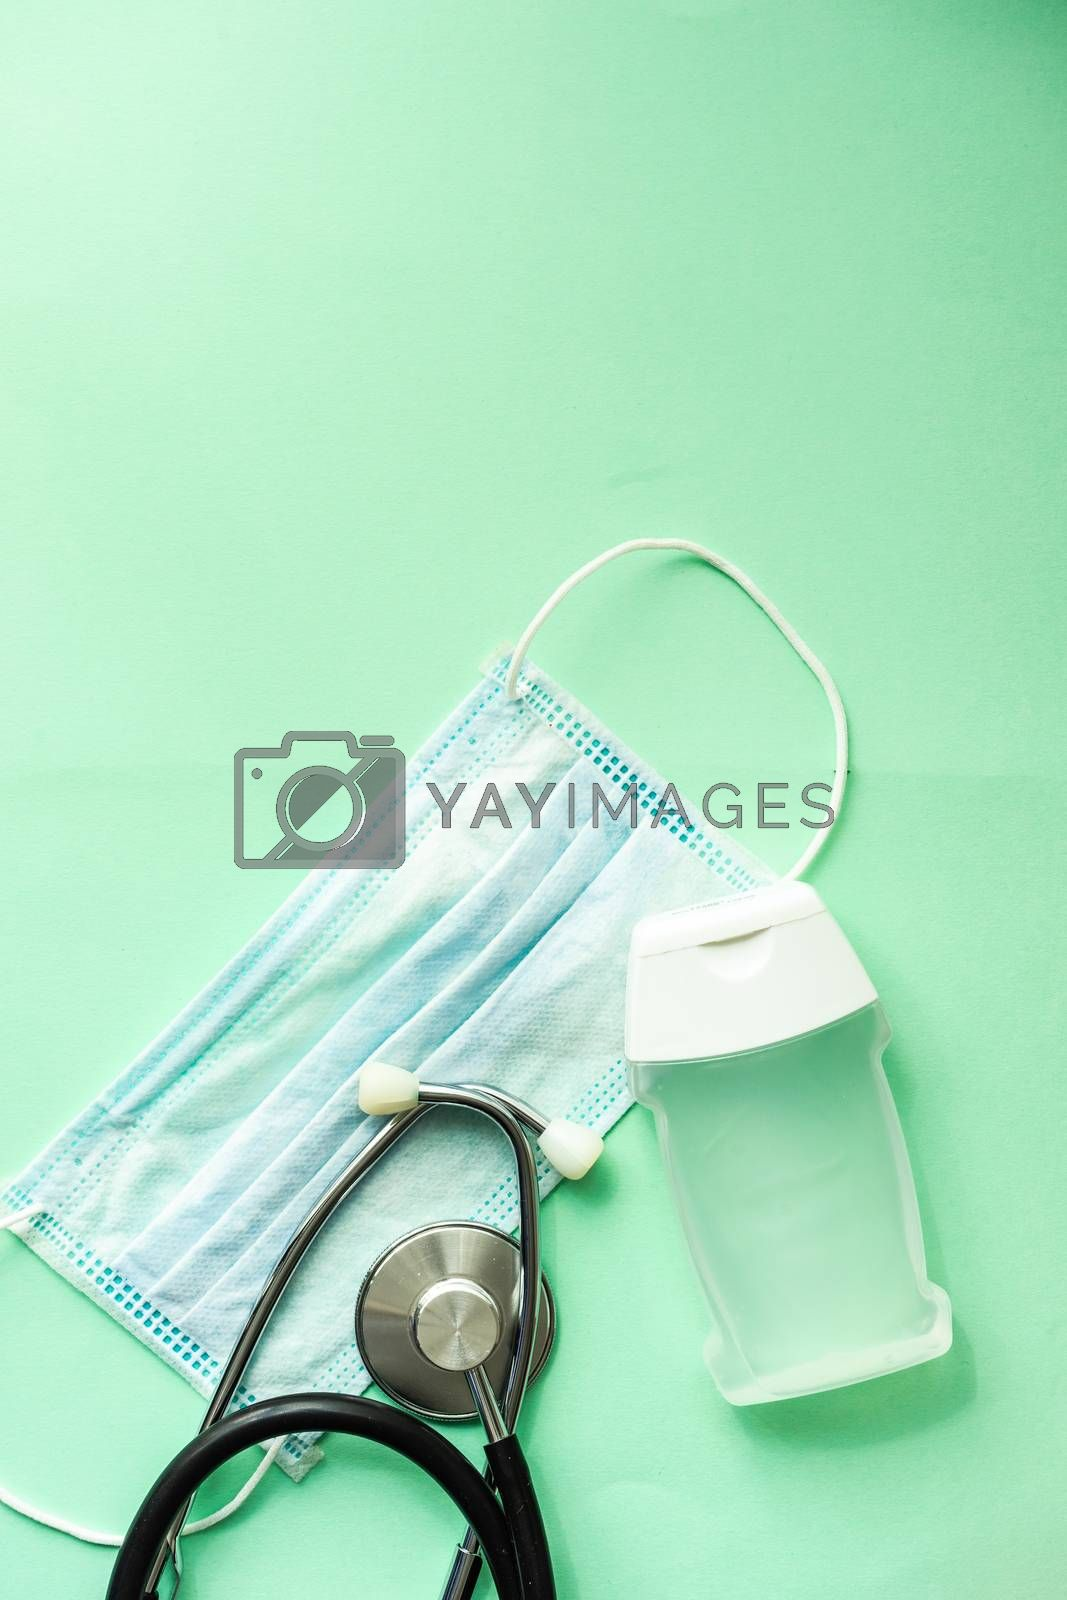 Coronavirus or Covid-19 epidemic healthcare concept on mint green pastel background with copy space